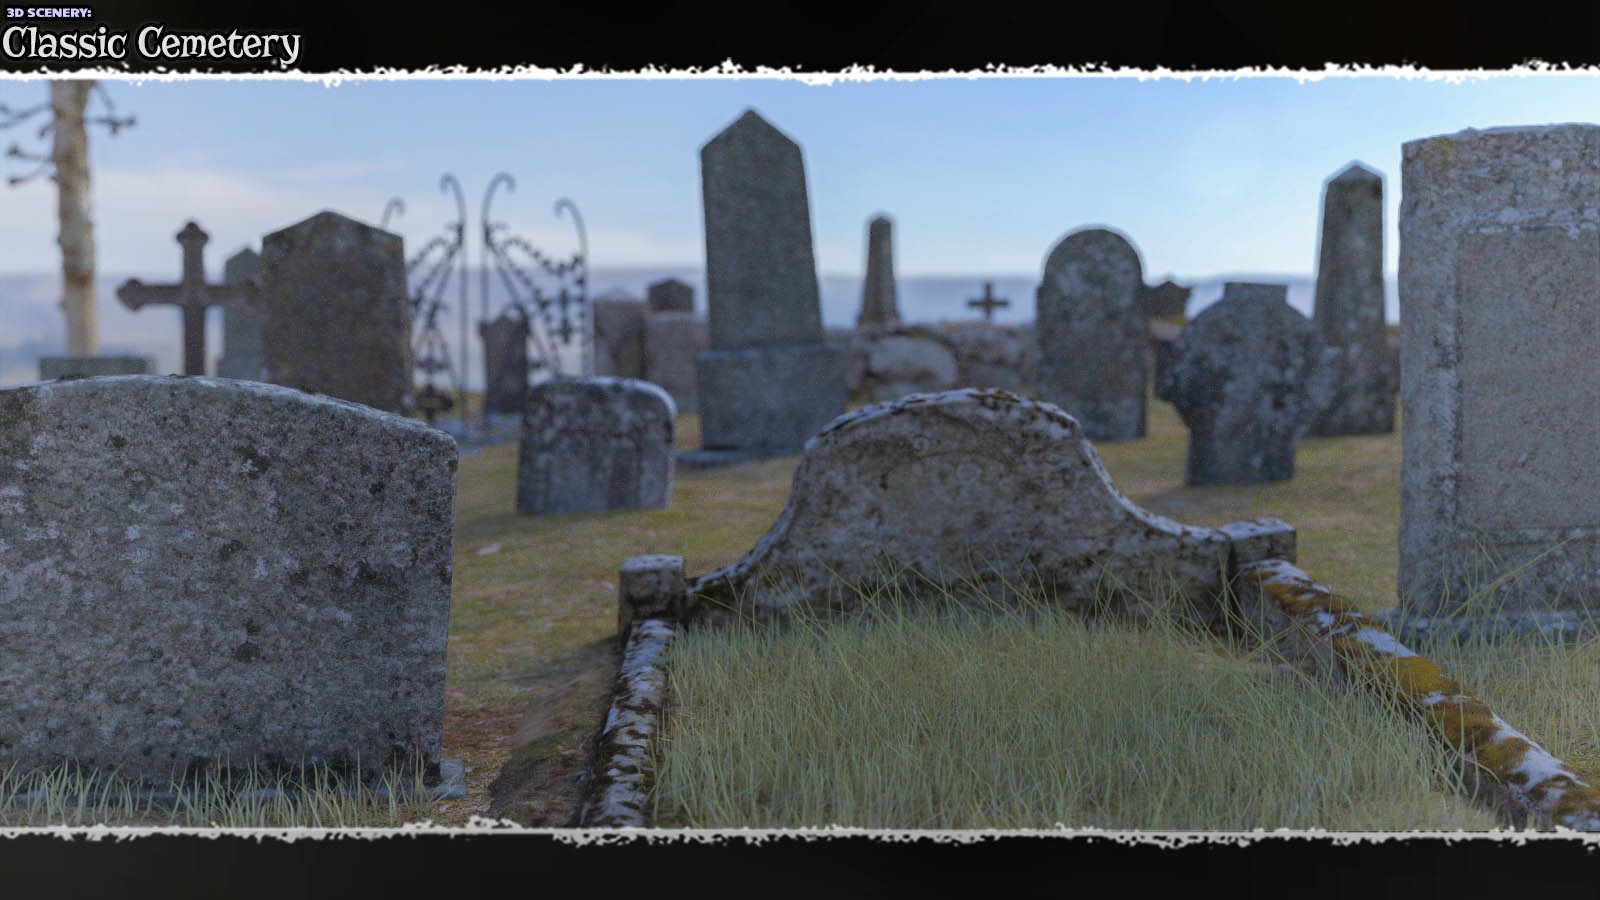 3D Scenery: Classic Cemetery  by ShaaraMuse3D